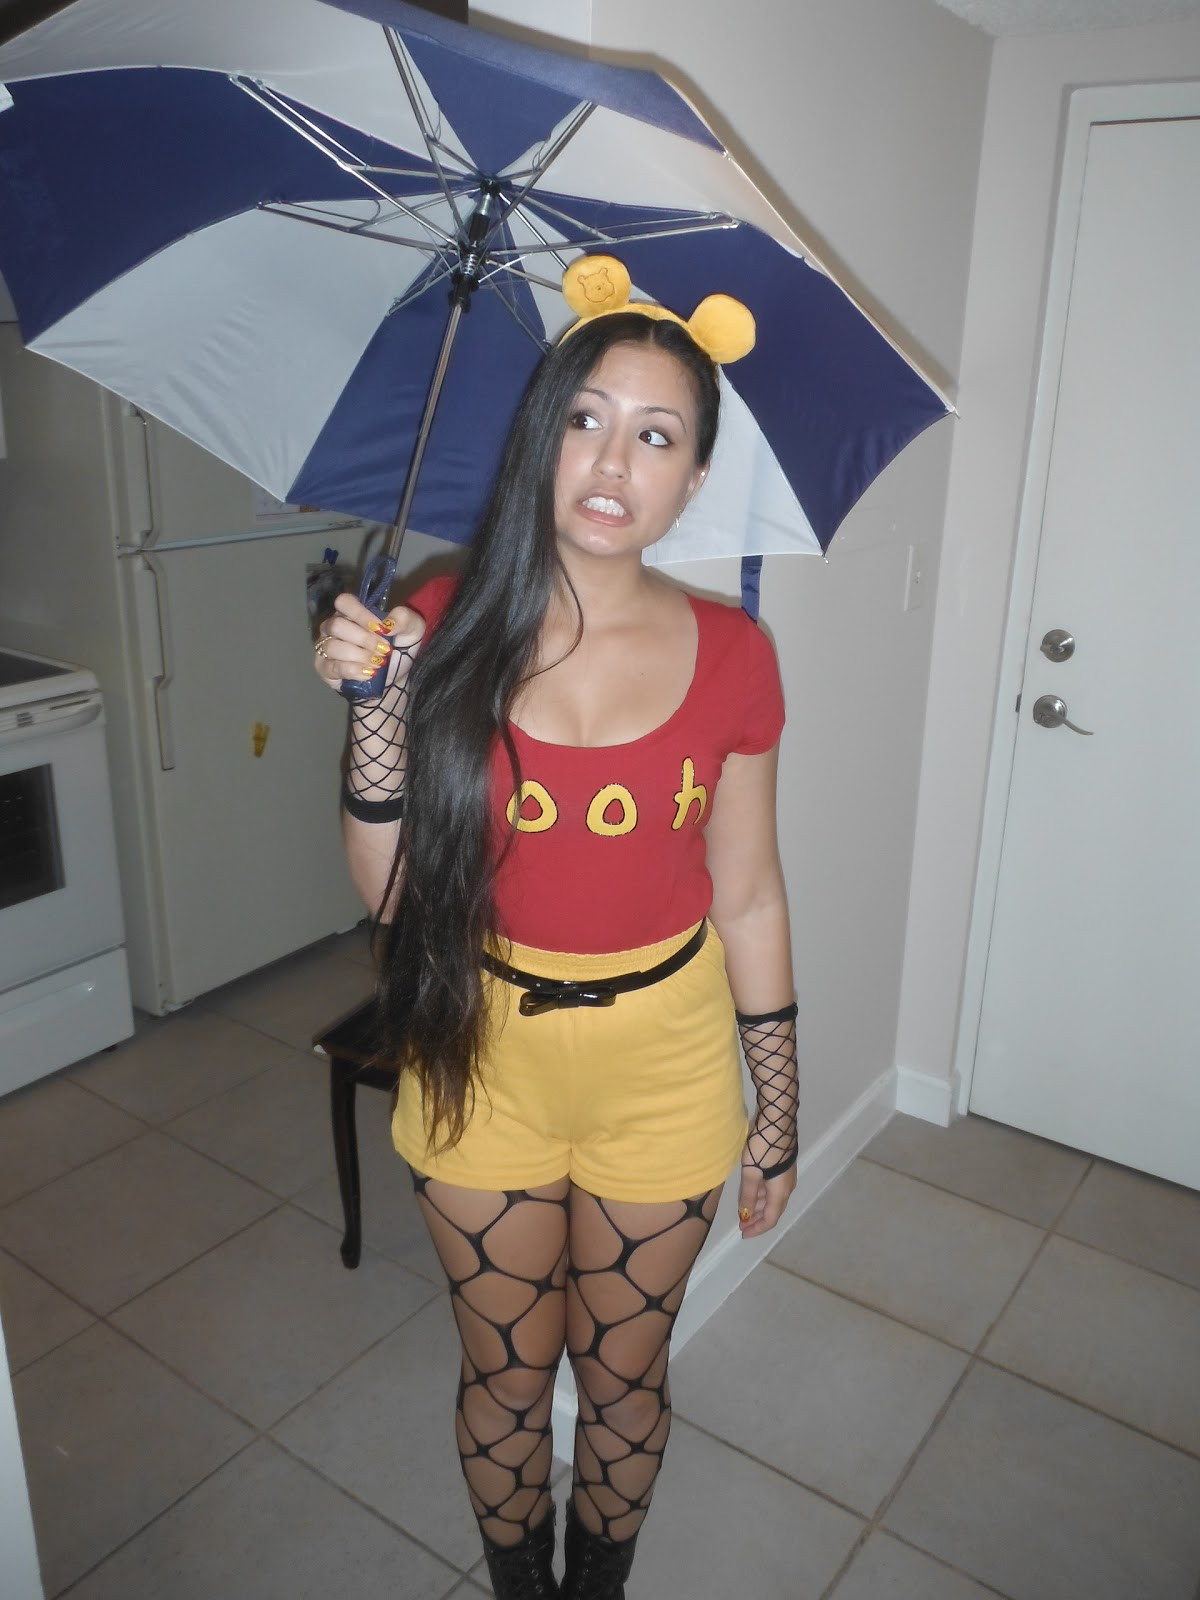 Best ideas about DIY Winnie The Pooh Costume . Save or Pin Dizzida DIY Adult Female Winnie The Pooh Costume Now.